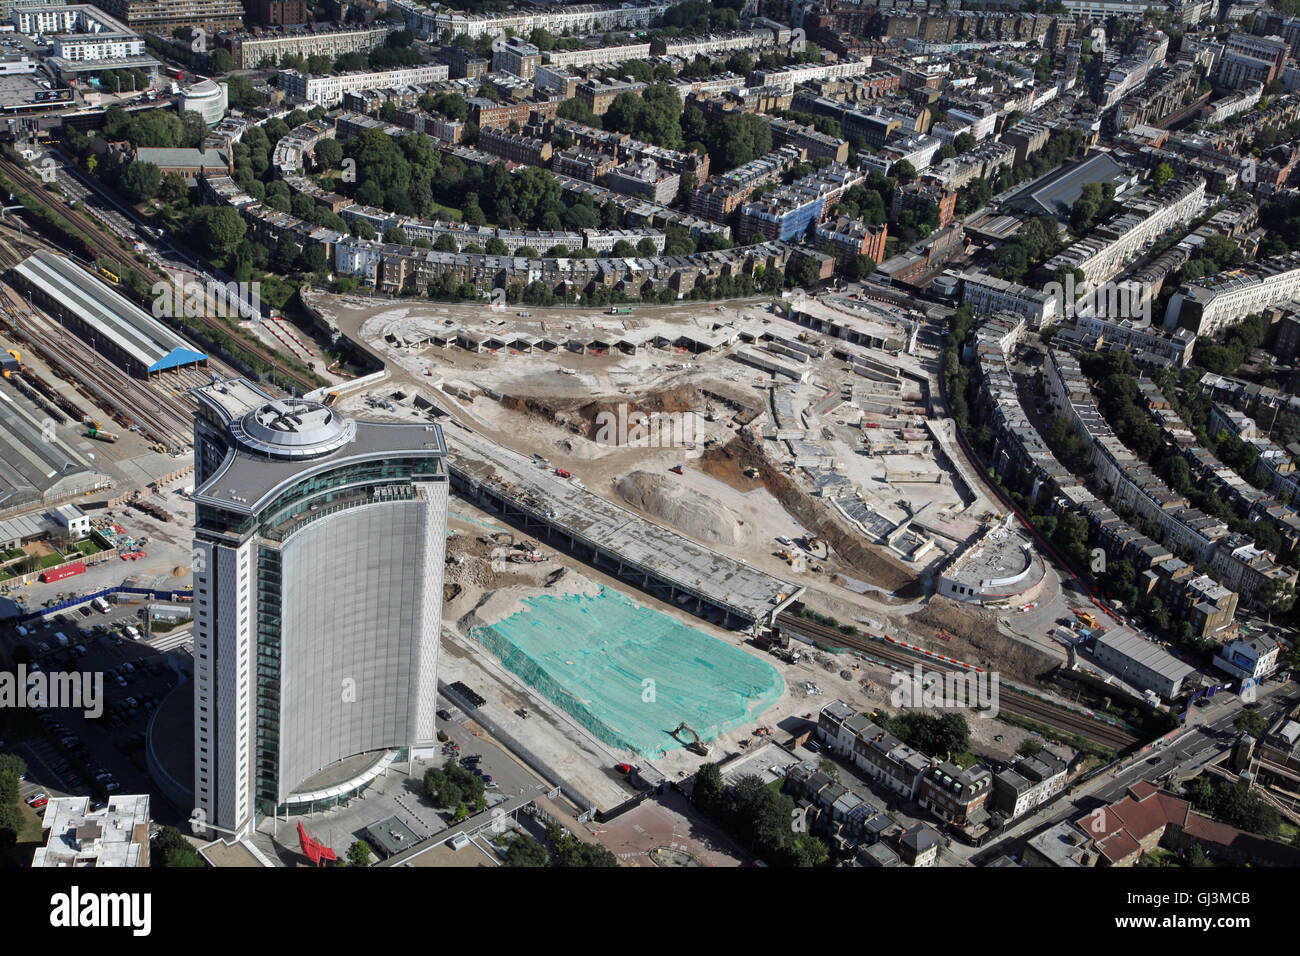 aerial view of The Empress State Building at Olympia, Earls Court, London, UK - Stock Image